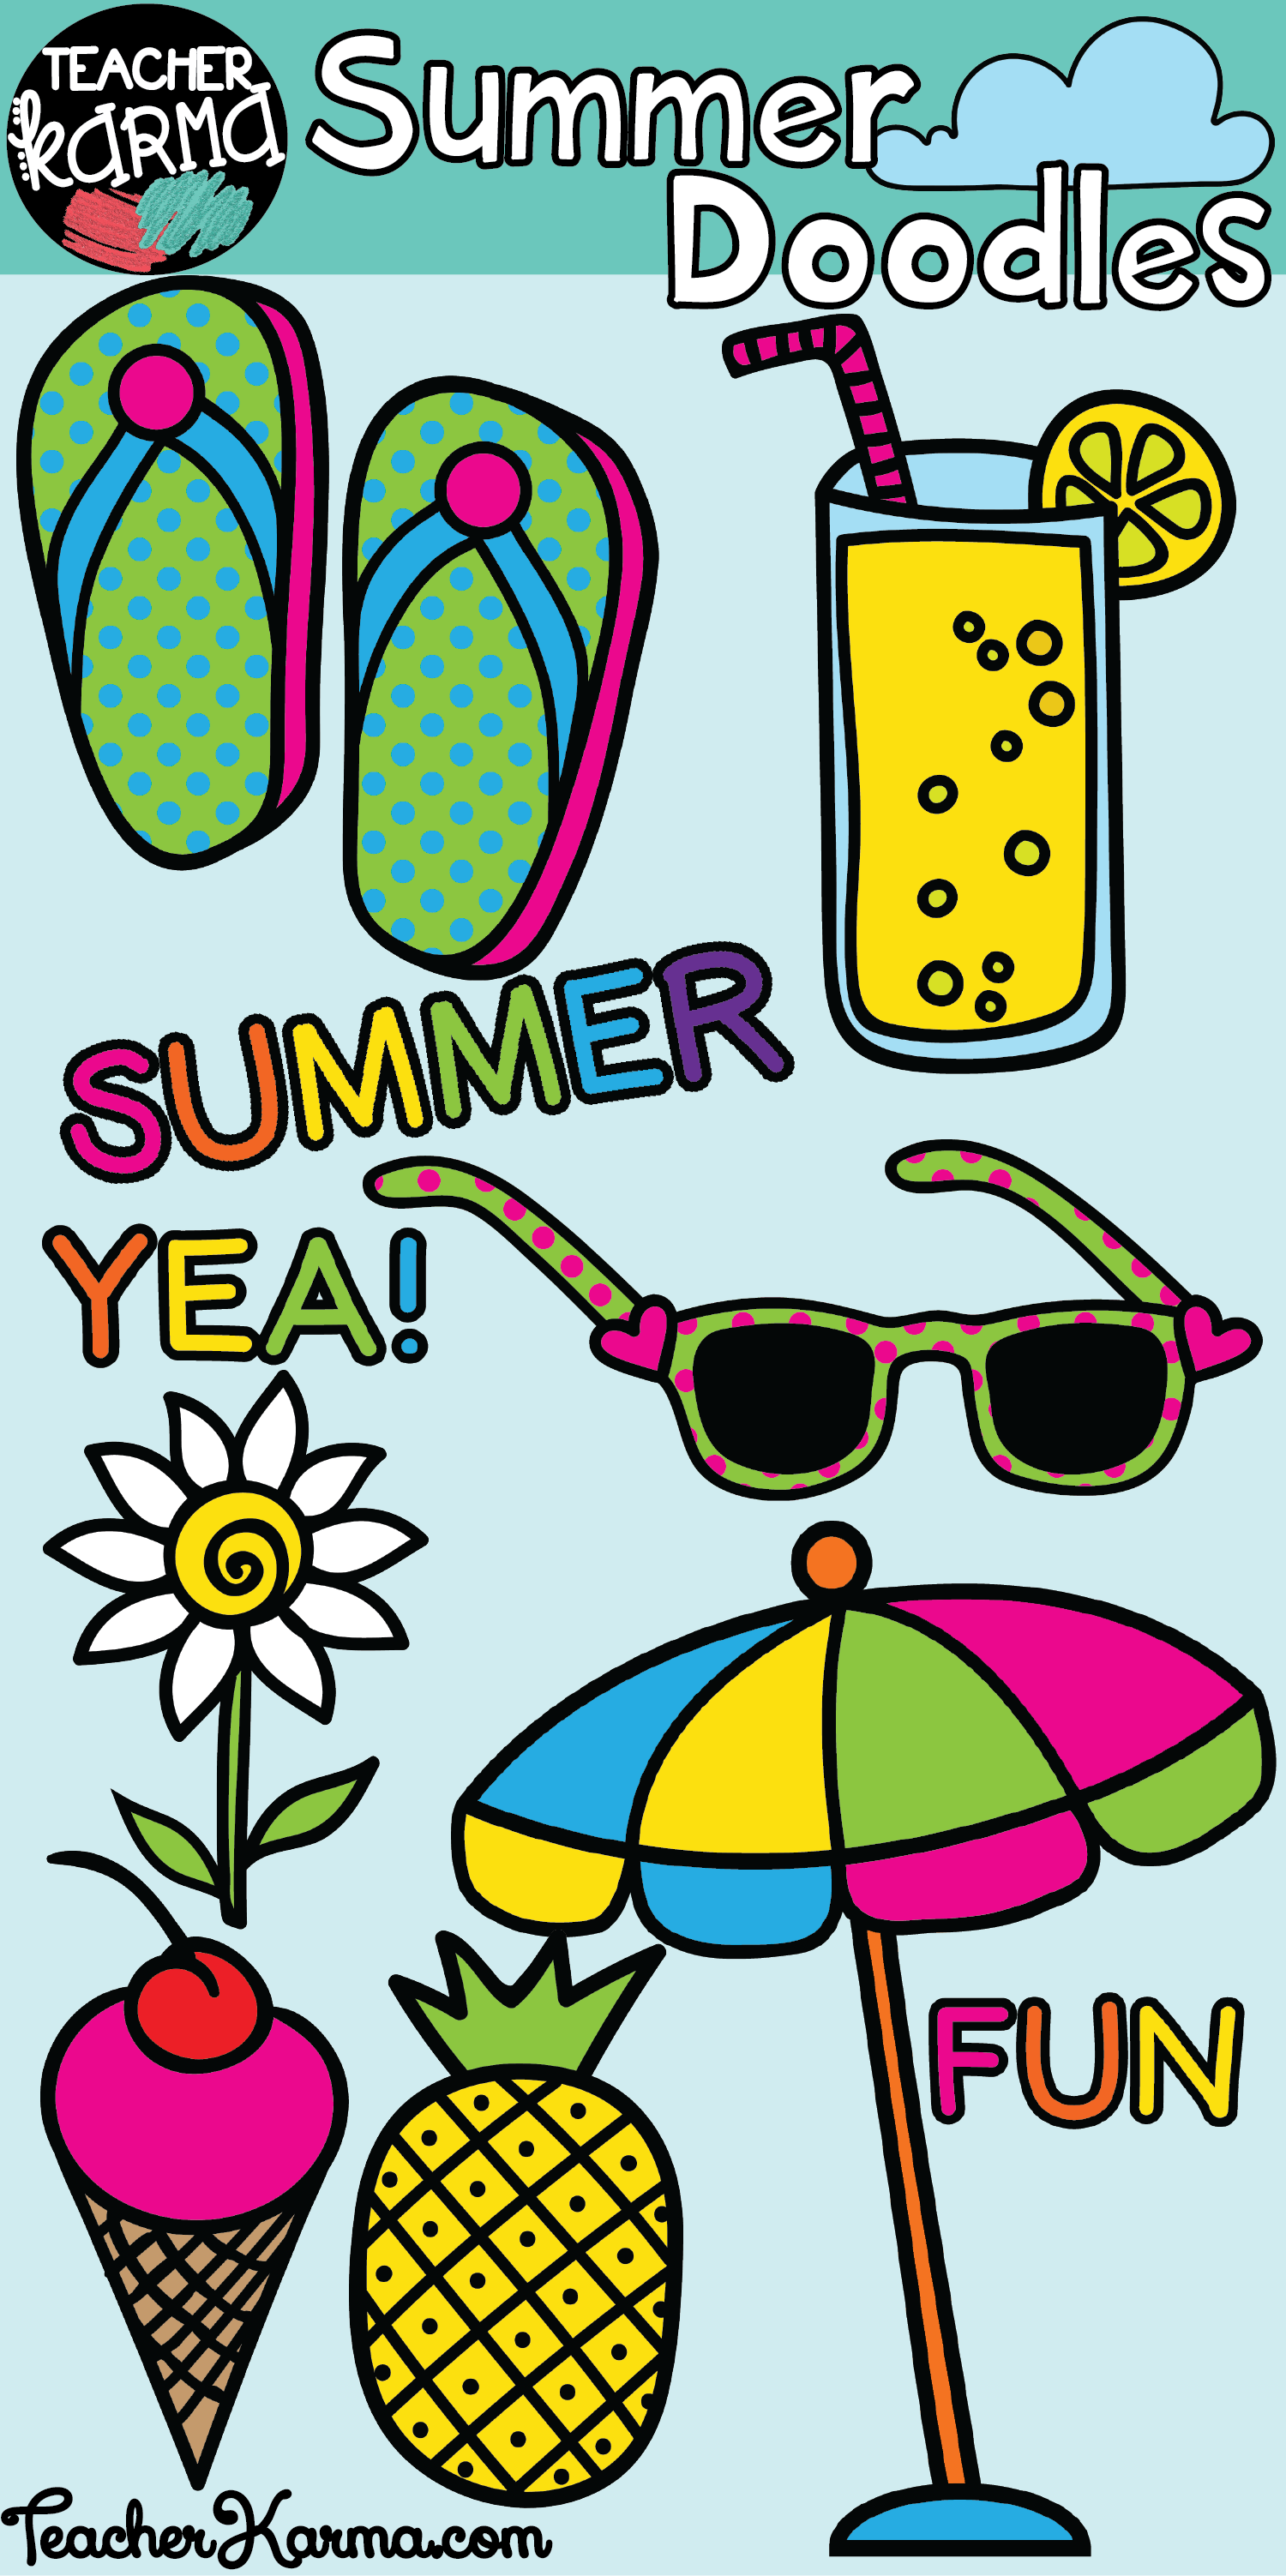 medium resolution of summer doodles clipart is perfect for classroom teachers and teachers pay teachers sellers works great for end of year activities teacherkarma com